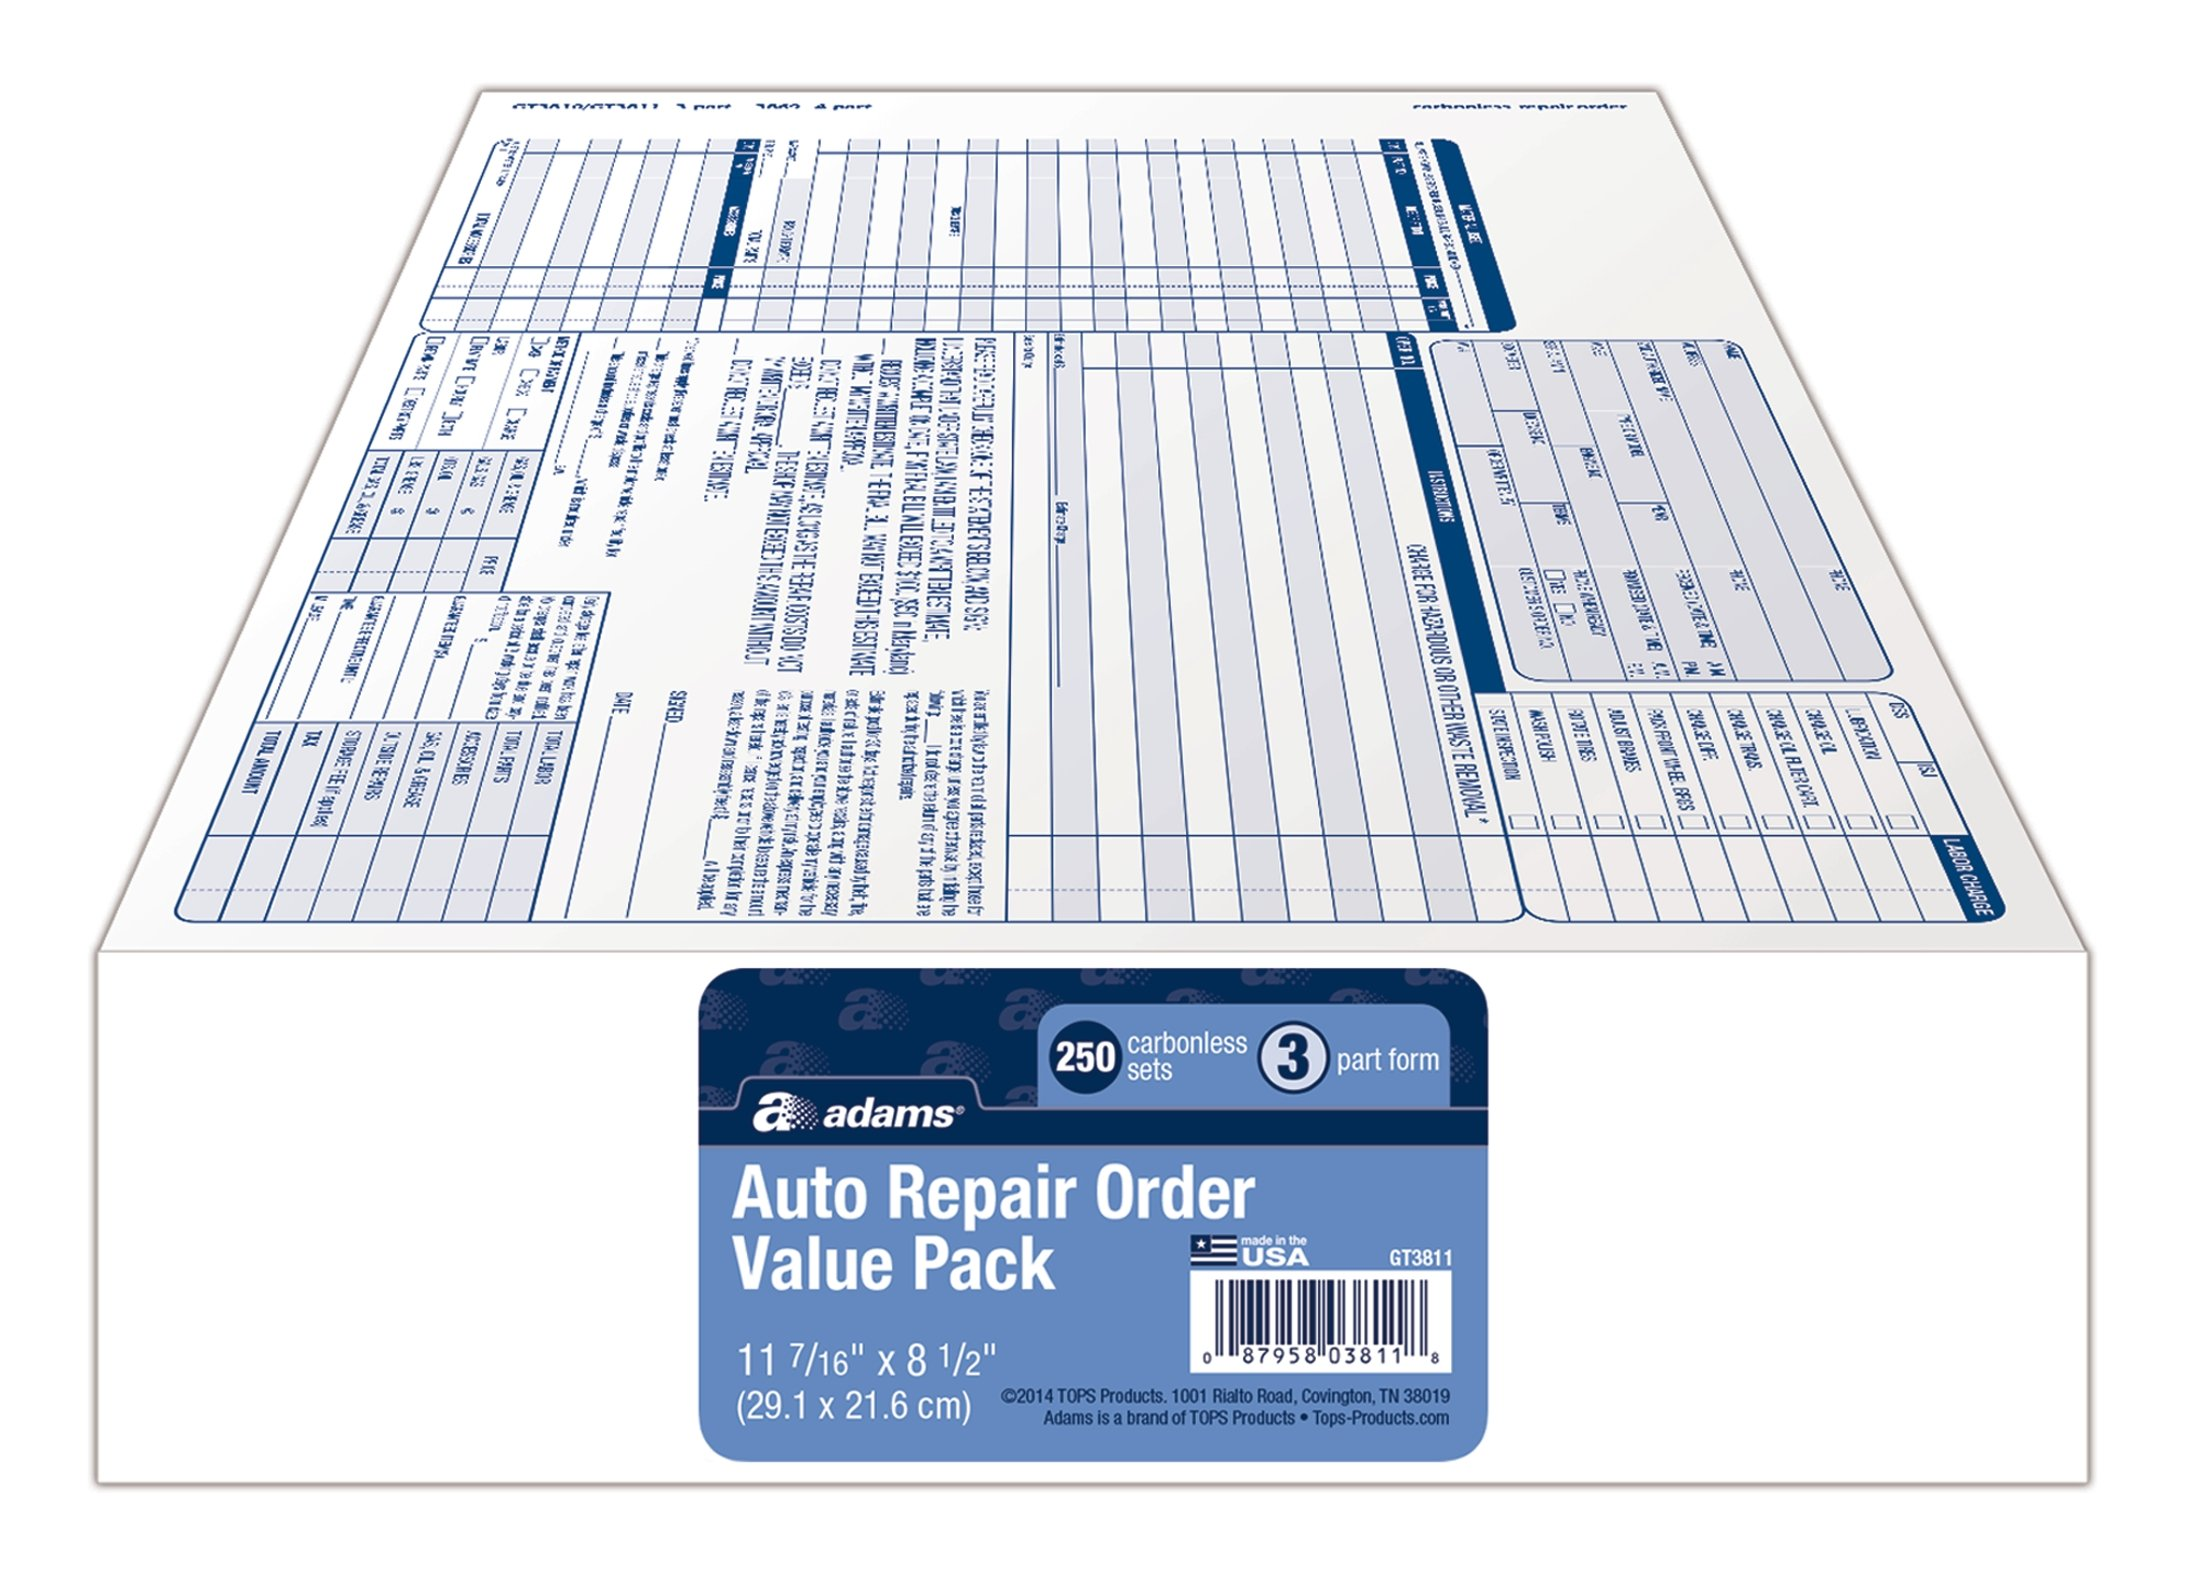 Adams Garage Repair Order Forms, 8.5 x 11 Inch, 3 Parts, 250-Count, White and Canary and White Tag (GT3811)